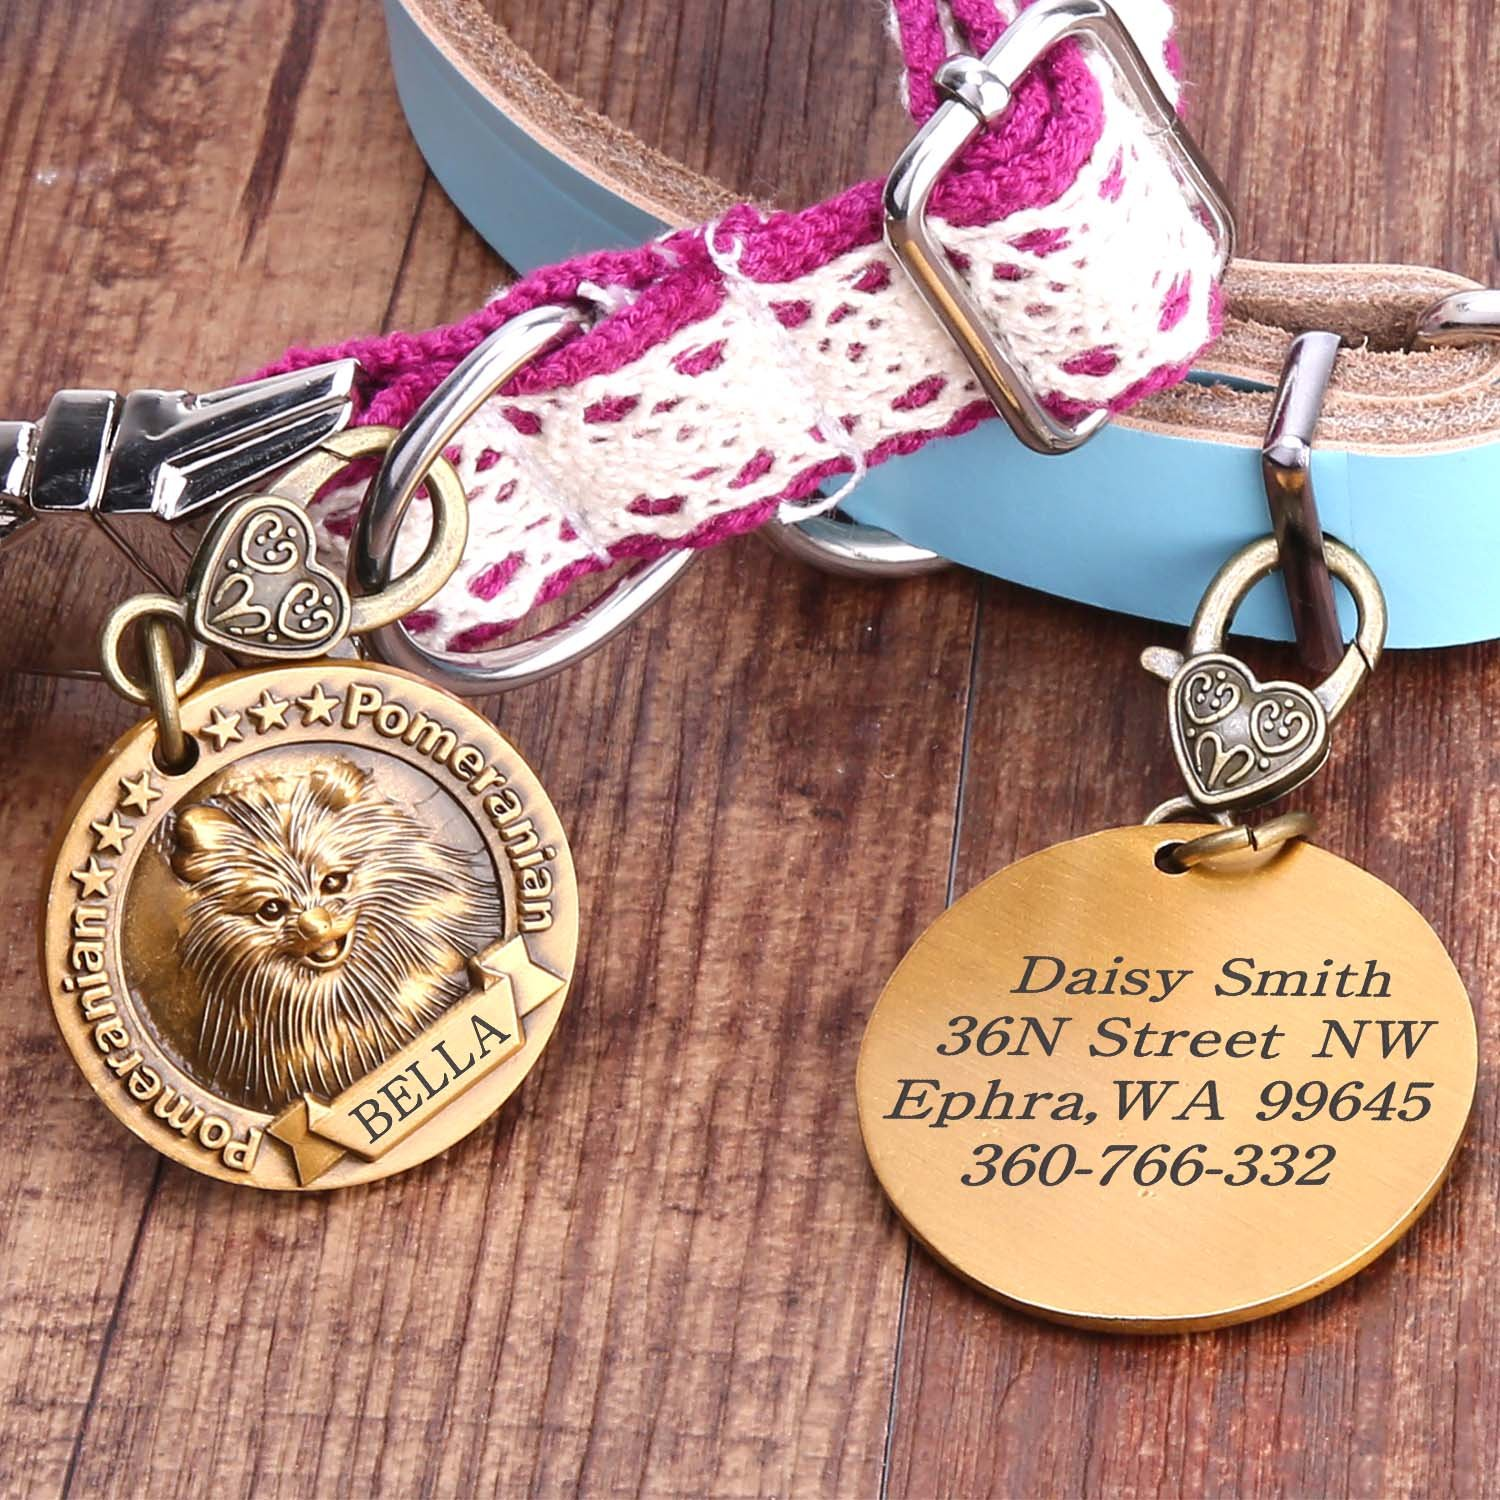 Dog Tags Personalized, Custom Pet ID Tags for Dogs Engraved Copper Badge Anti-Lost with Heart-shaped Buckle (German Shepherd)